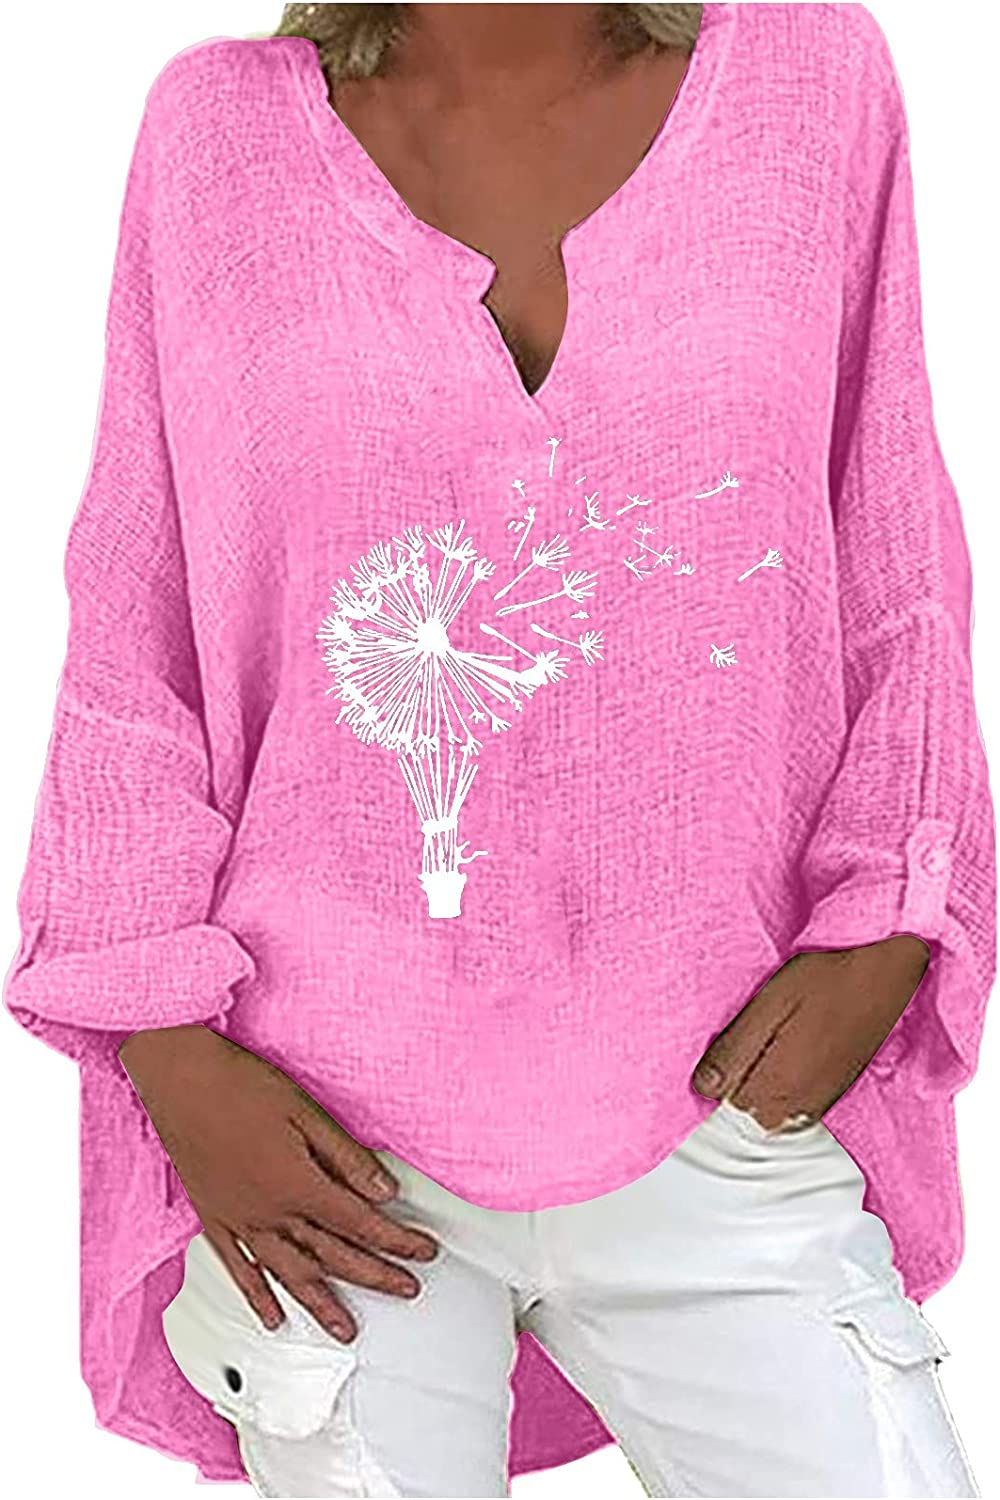 Plus Size Tops for Women V-Neck Long Sleeve T-Shirts Dandelion Printing Blouses Cotton and Linen Loose Tees